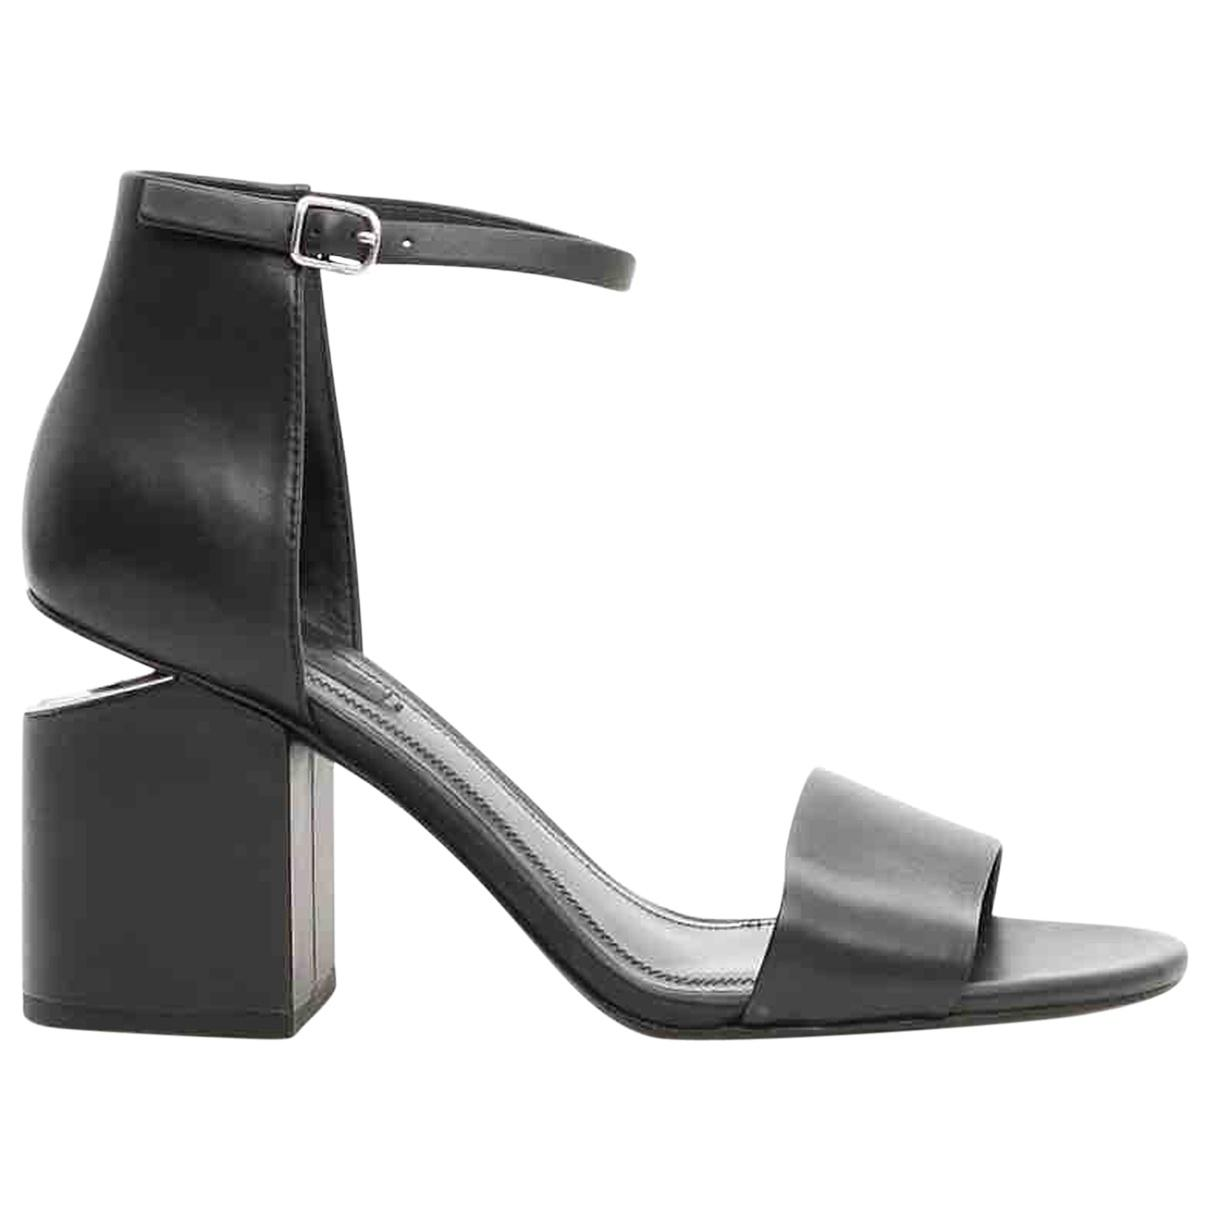 72 Wang Alexander Lyst In Black Leather Sandals Save wfwd0q5n